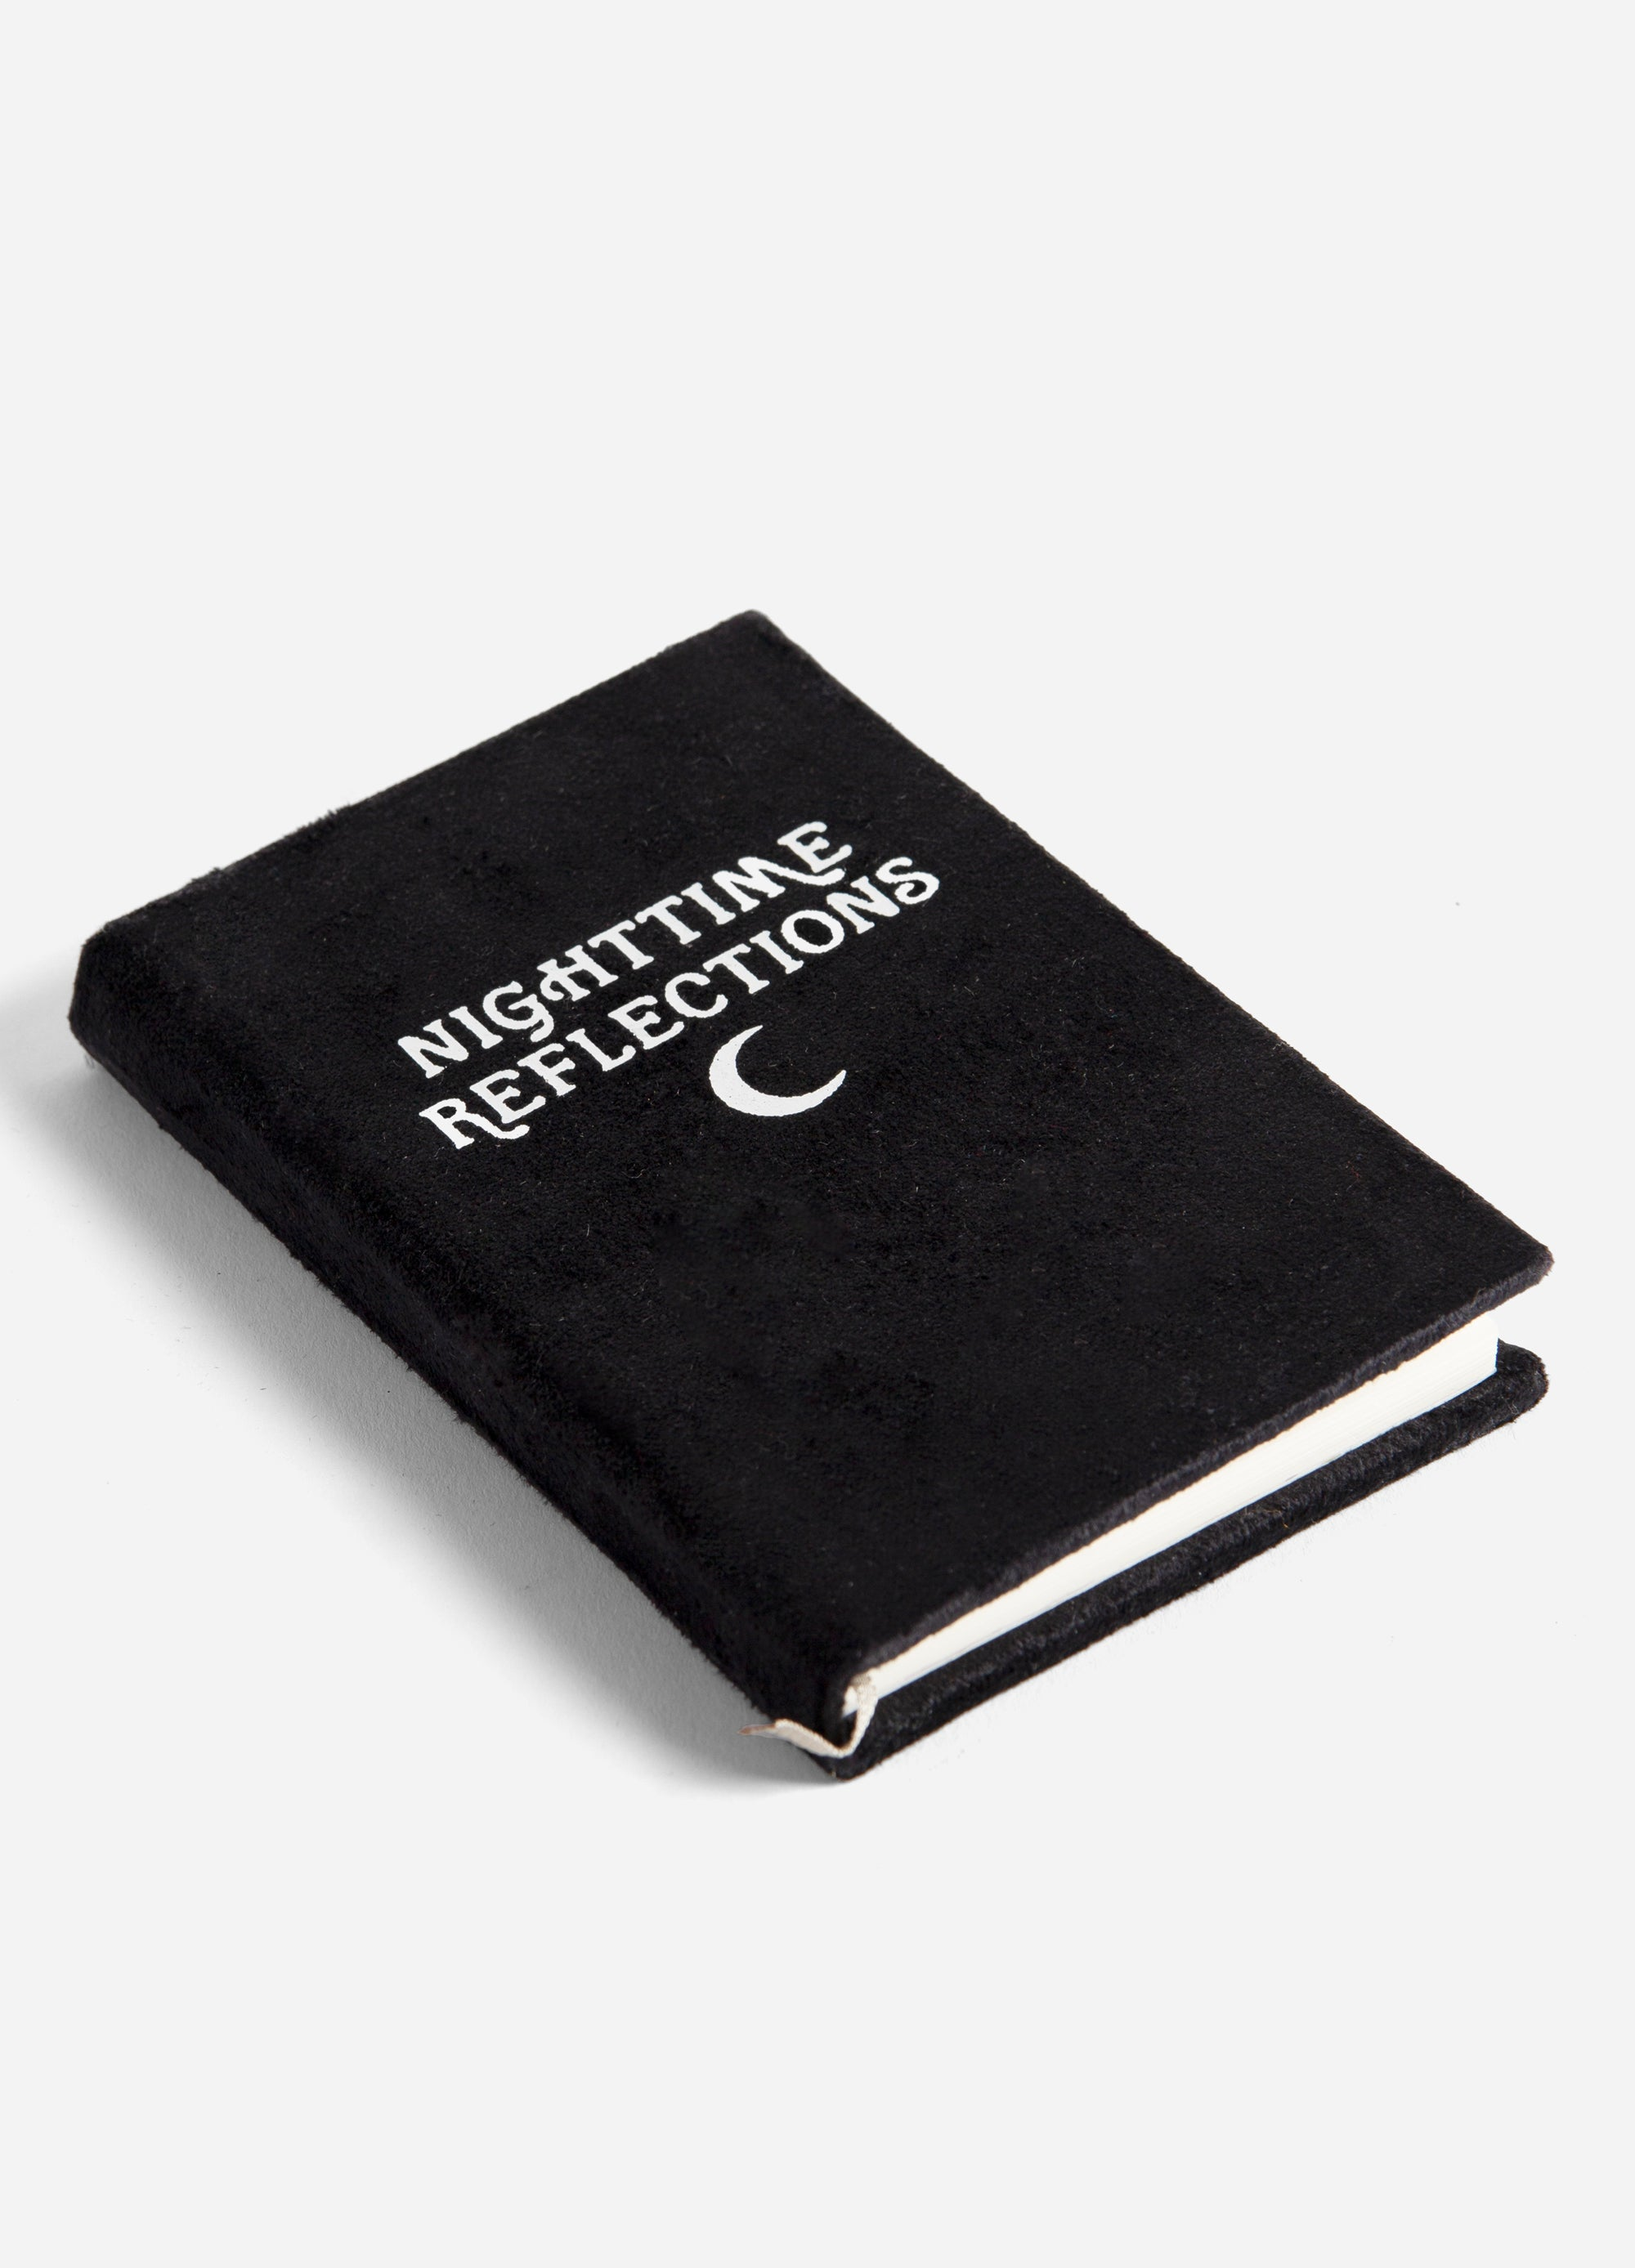 Nighttime Reflections - Velvet Mindfulness Journal - Black